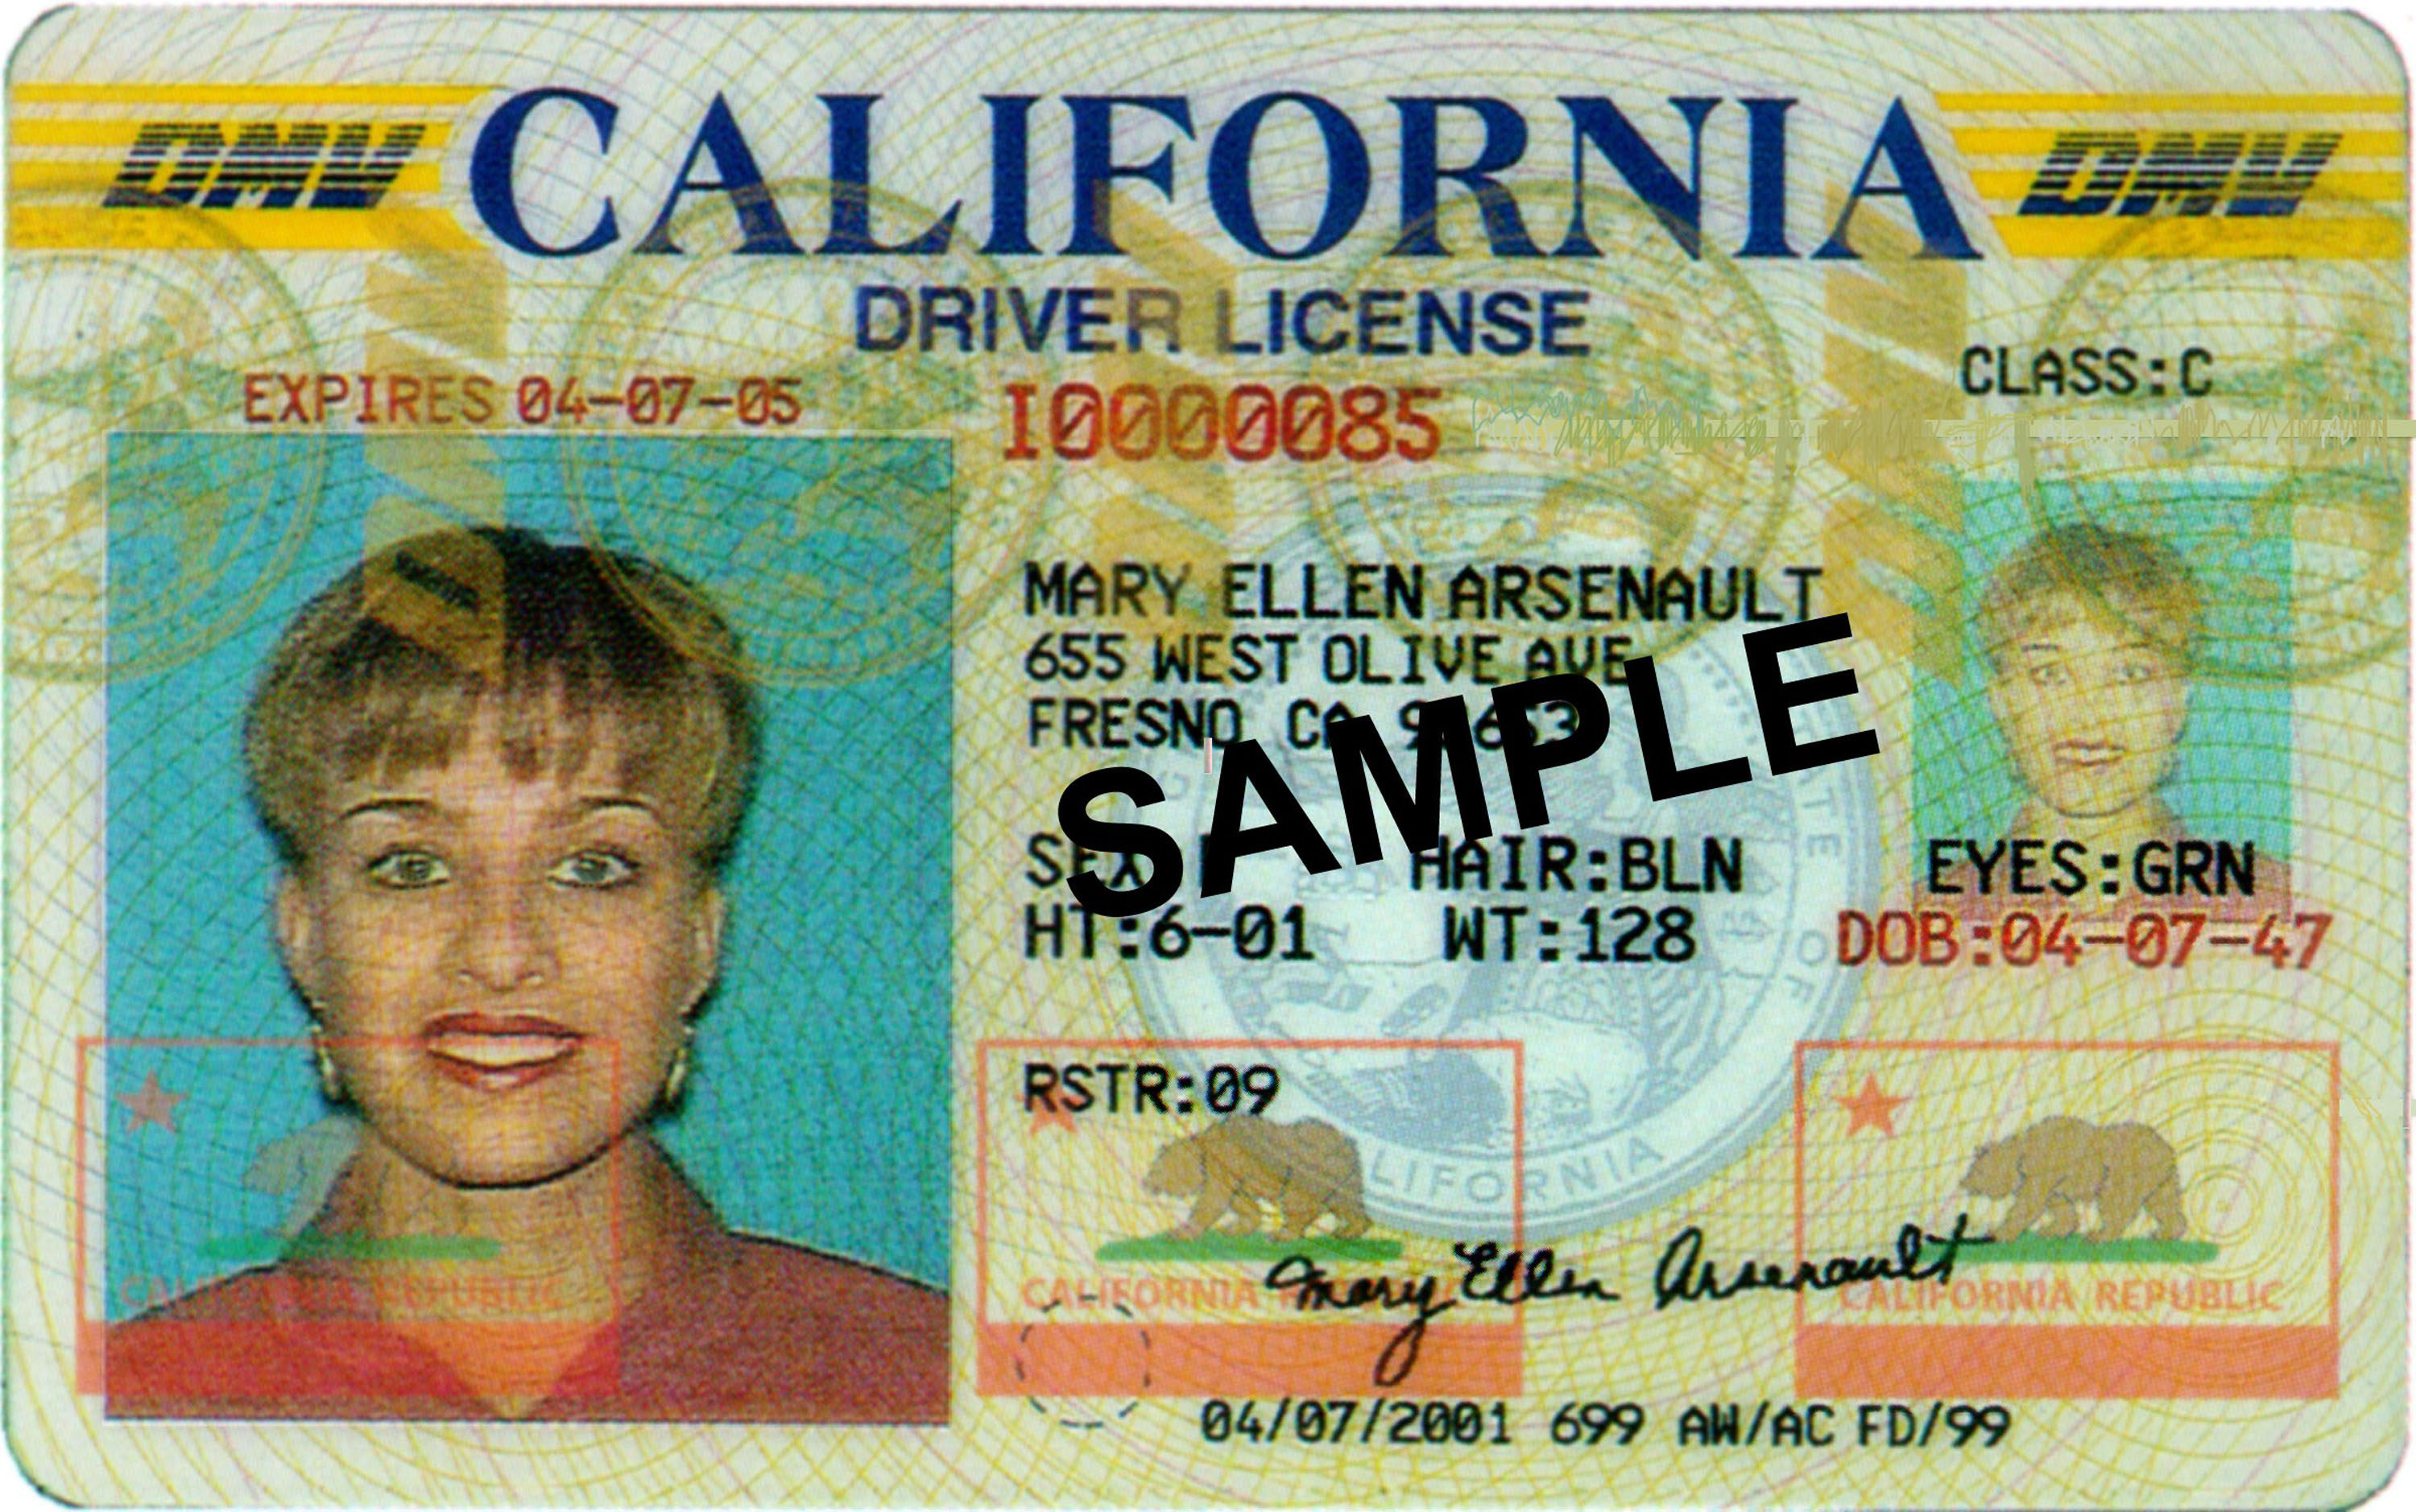 Creator License License Creator Drivers Drivers California